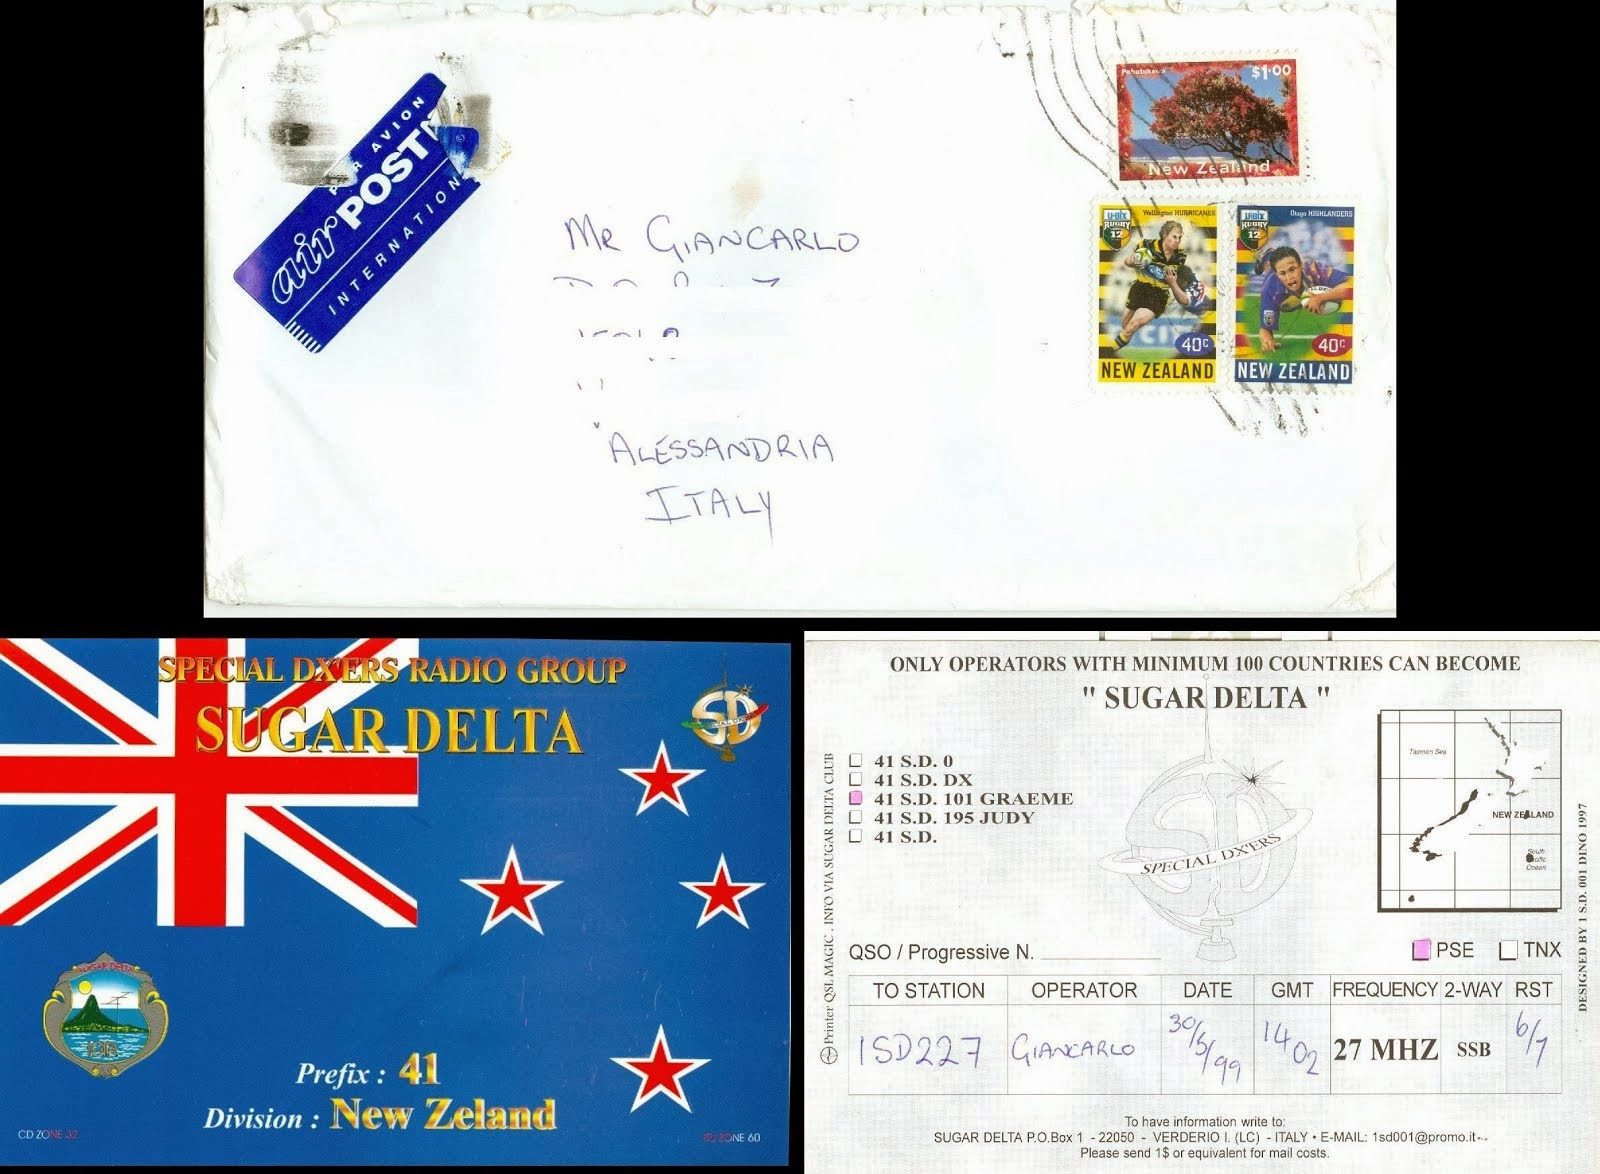 NEW ZEALAND REGIONS click on the image to see the link